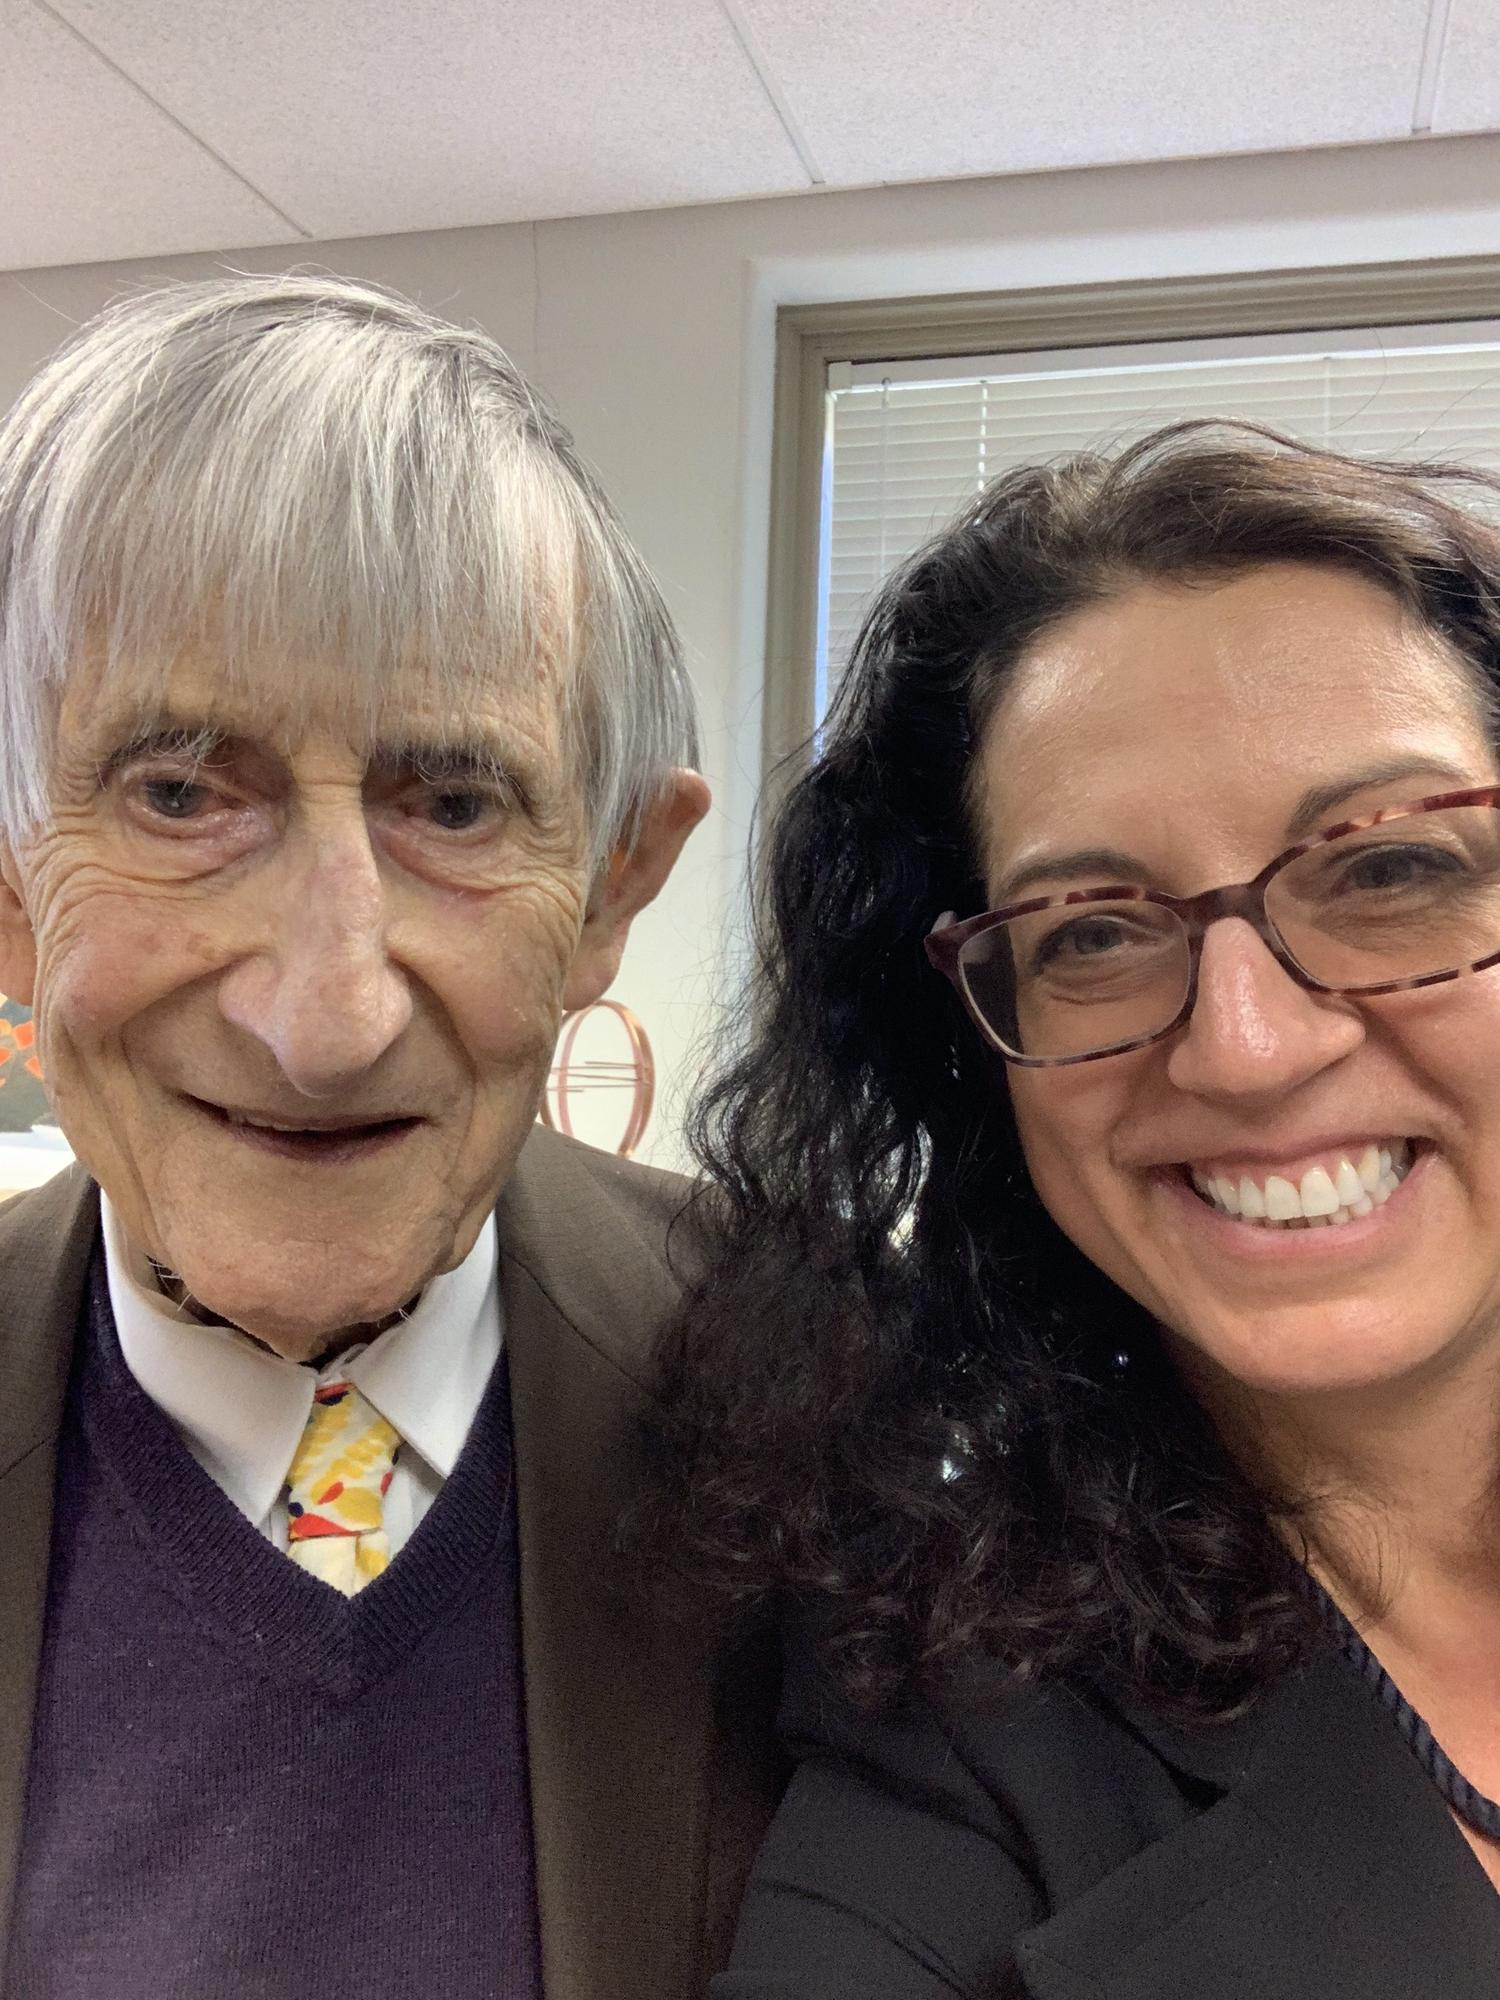 Freeman Dyson and Kristen Ghodsee 4